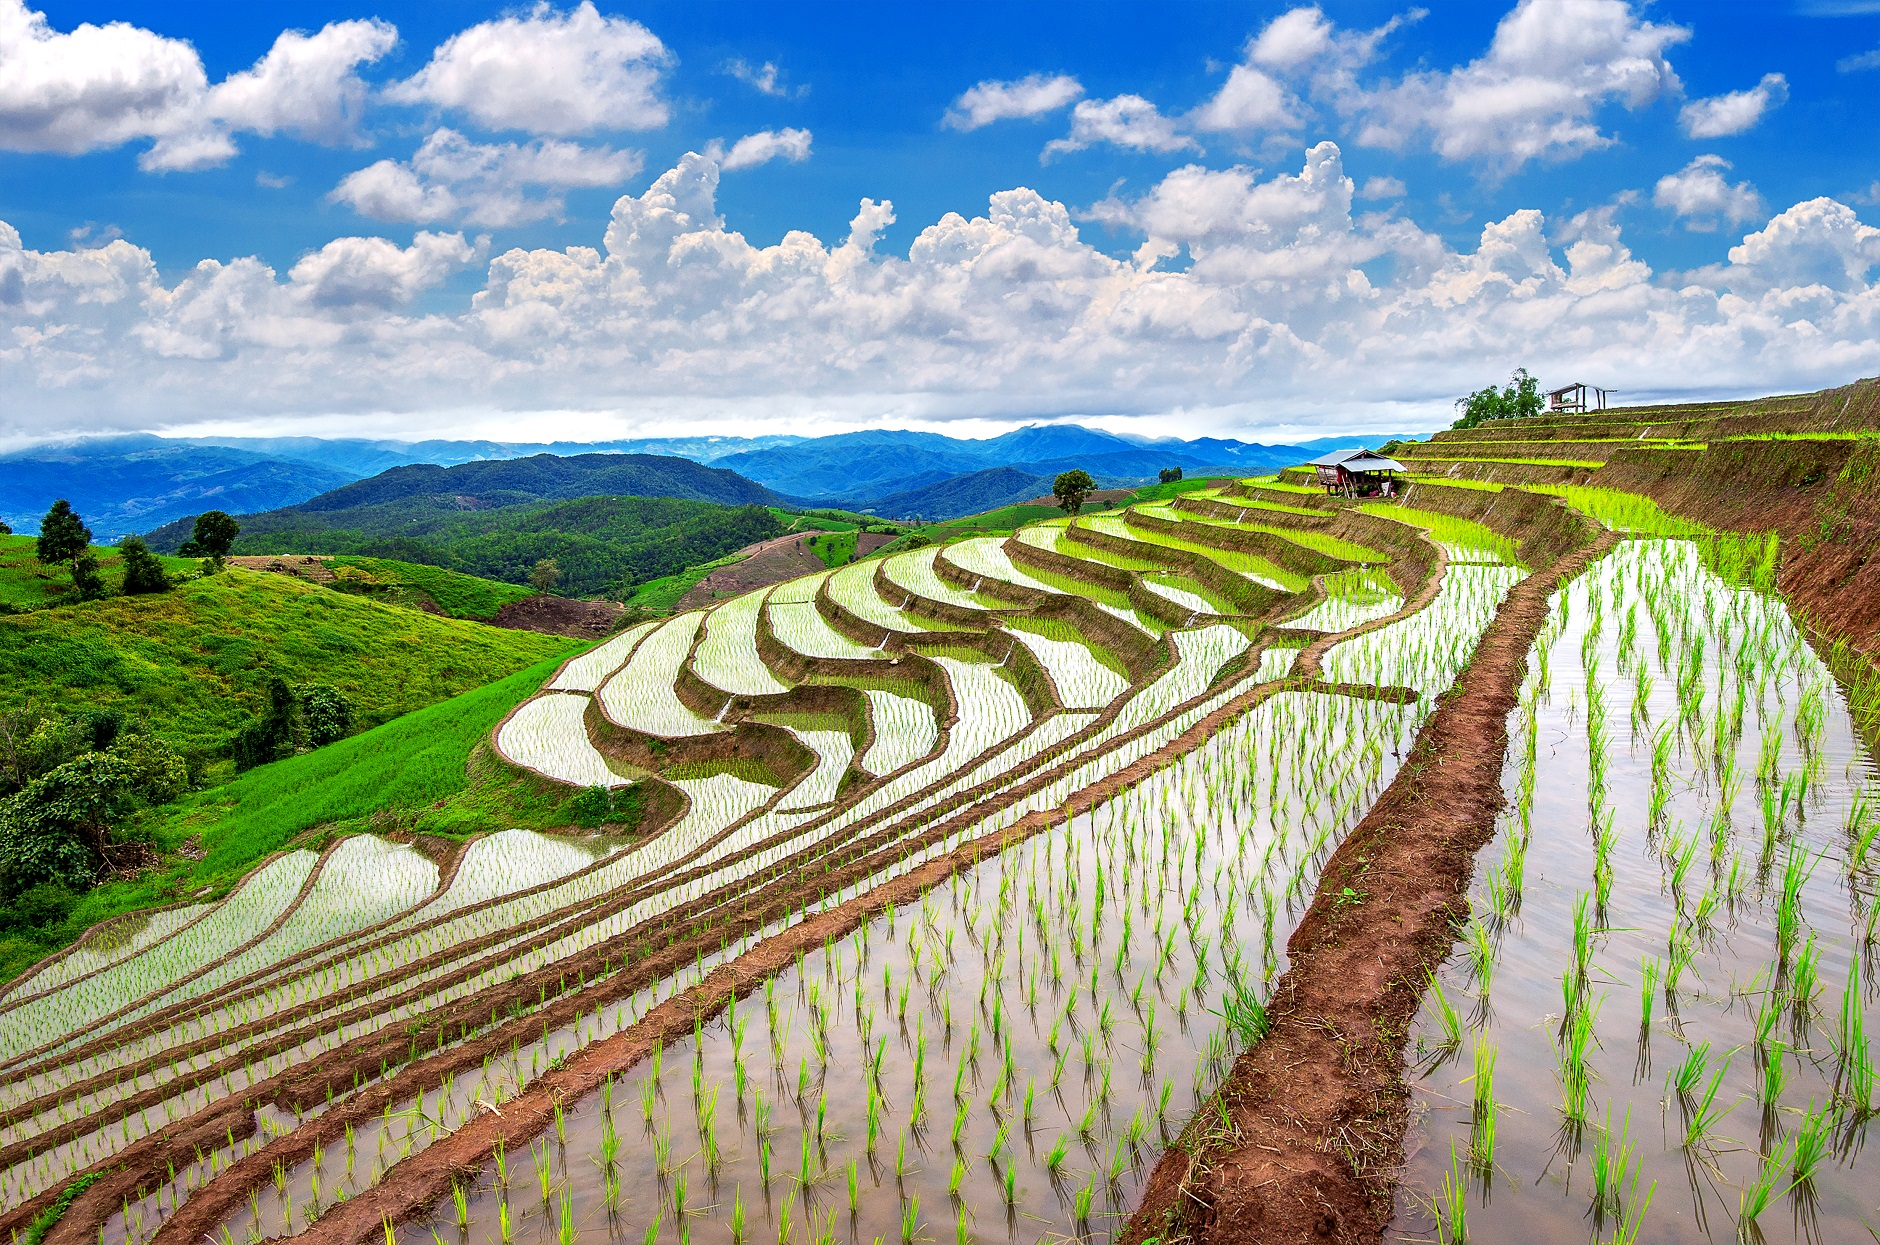 Rice exporting countries maintain a high price variance